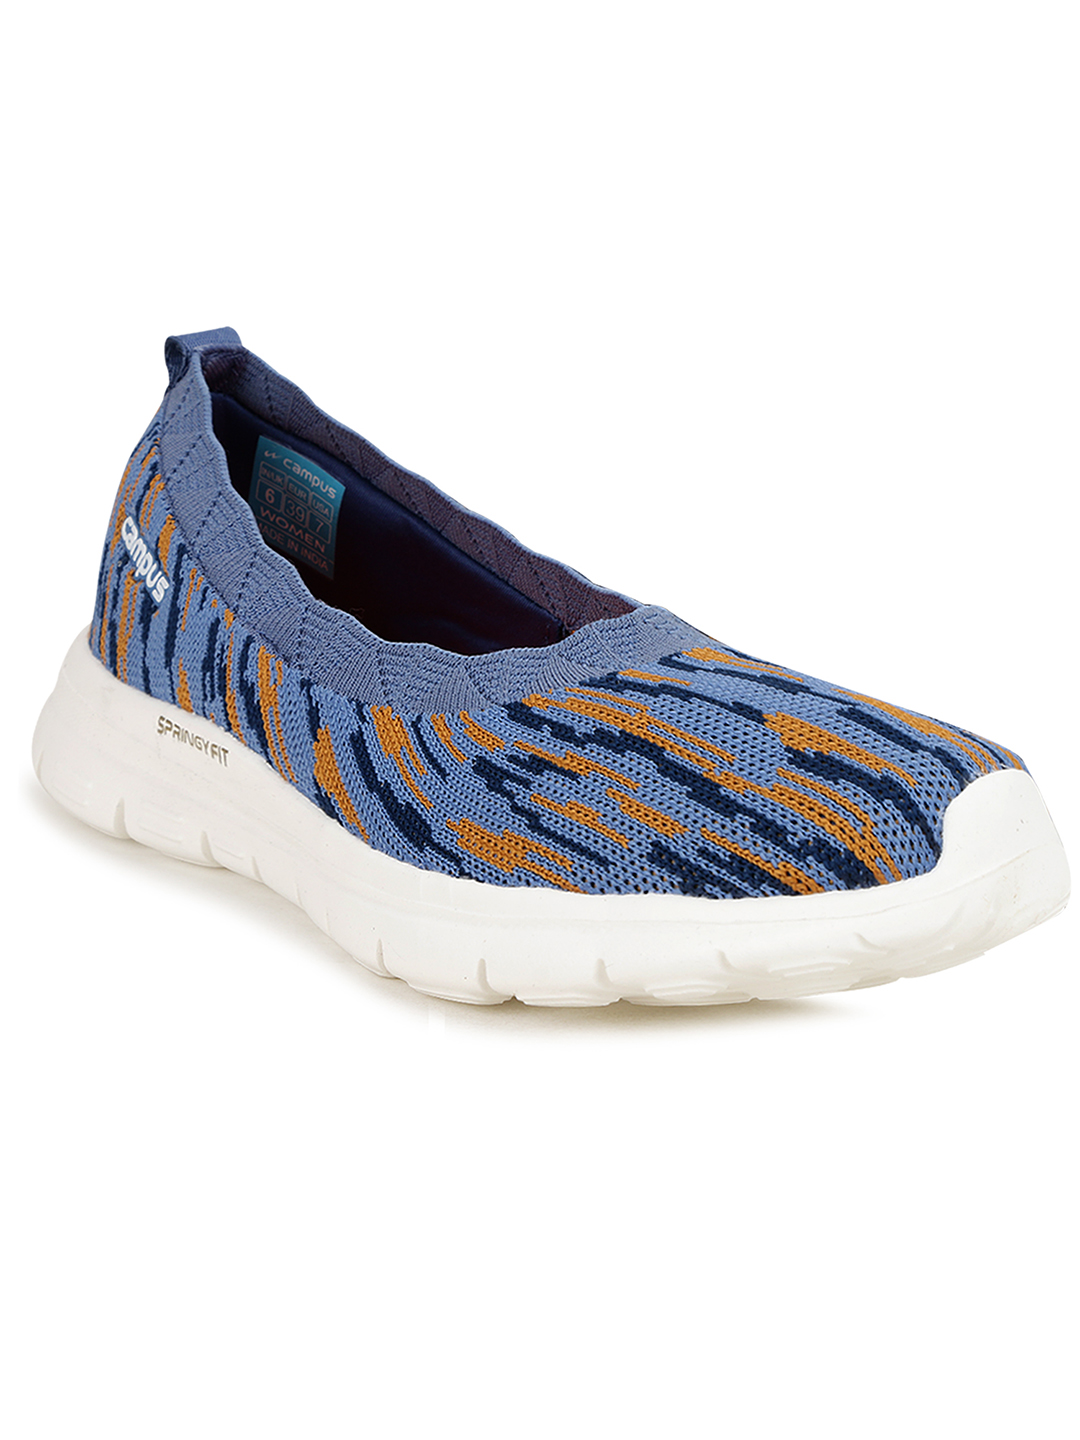 Campus Shoes   Blue Niomi Running Shoes